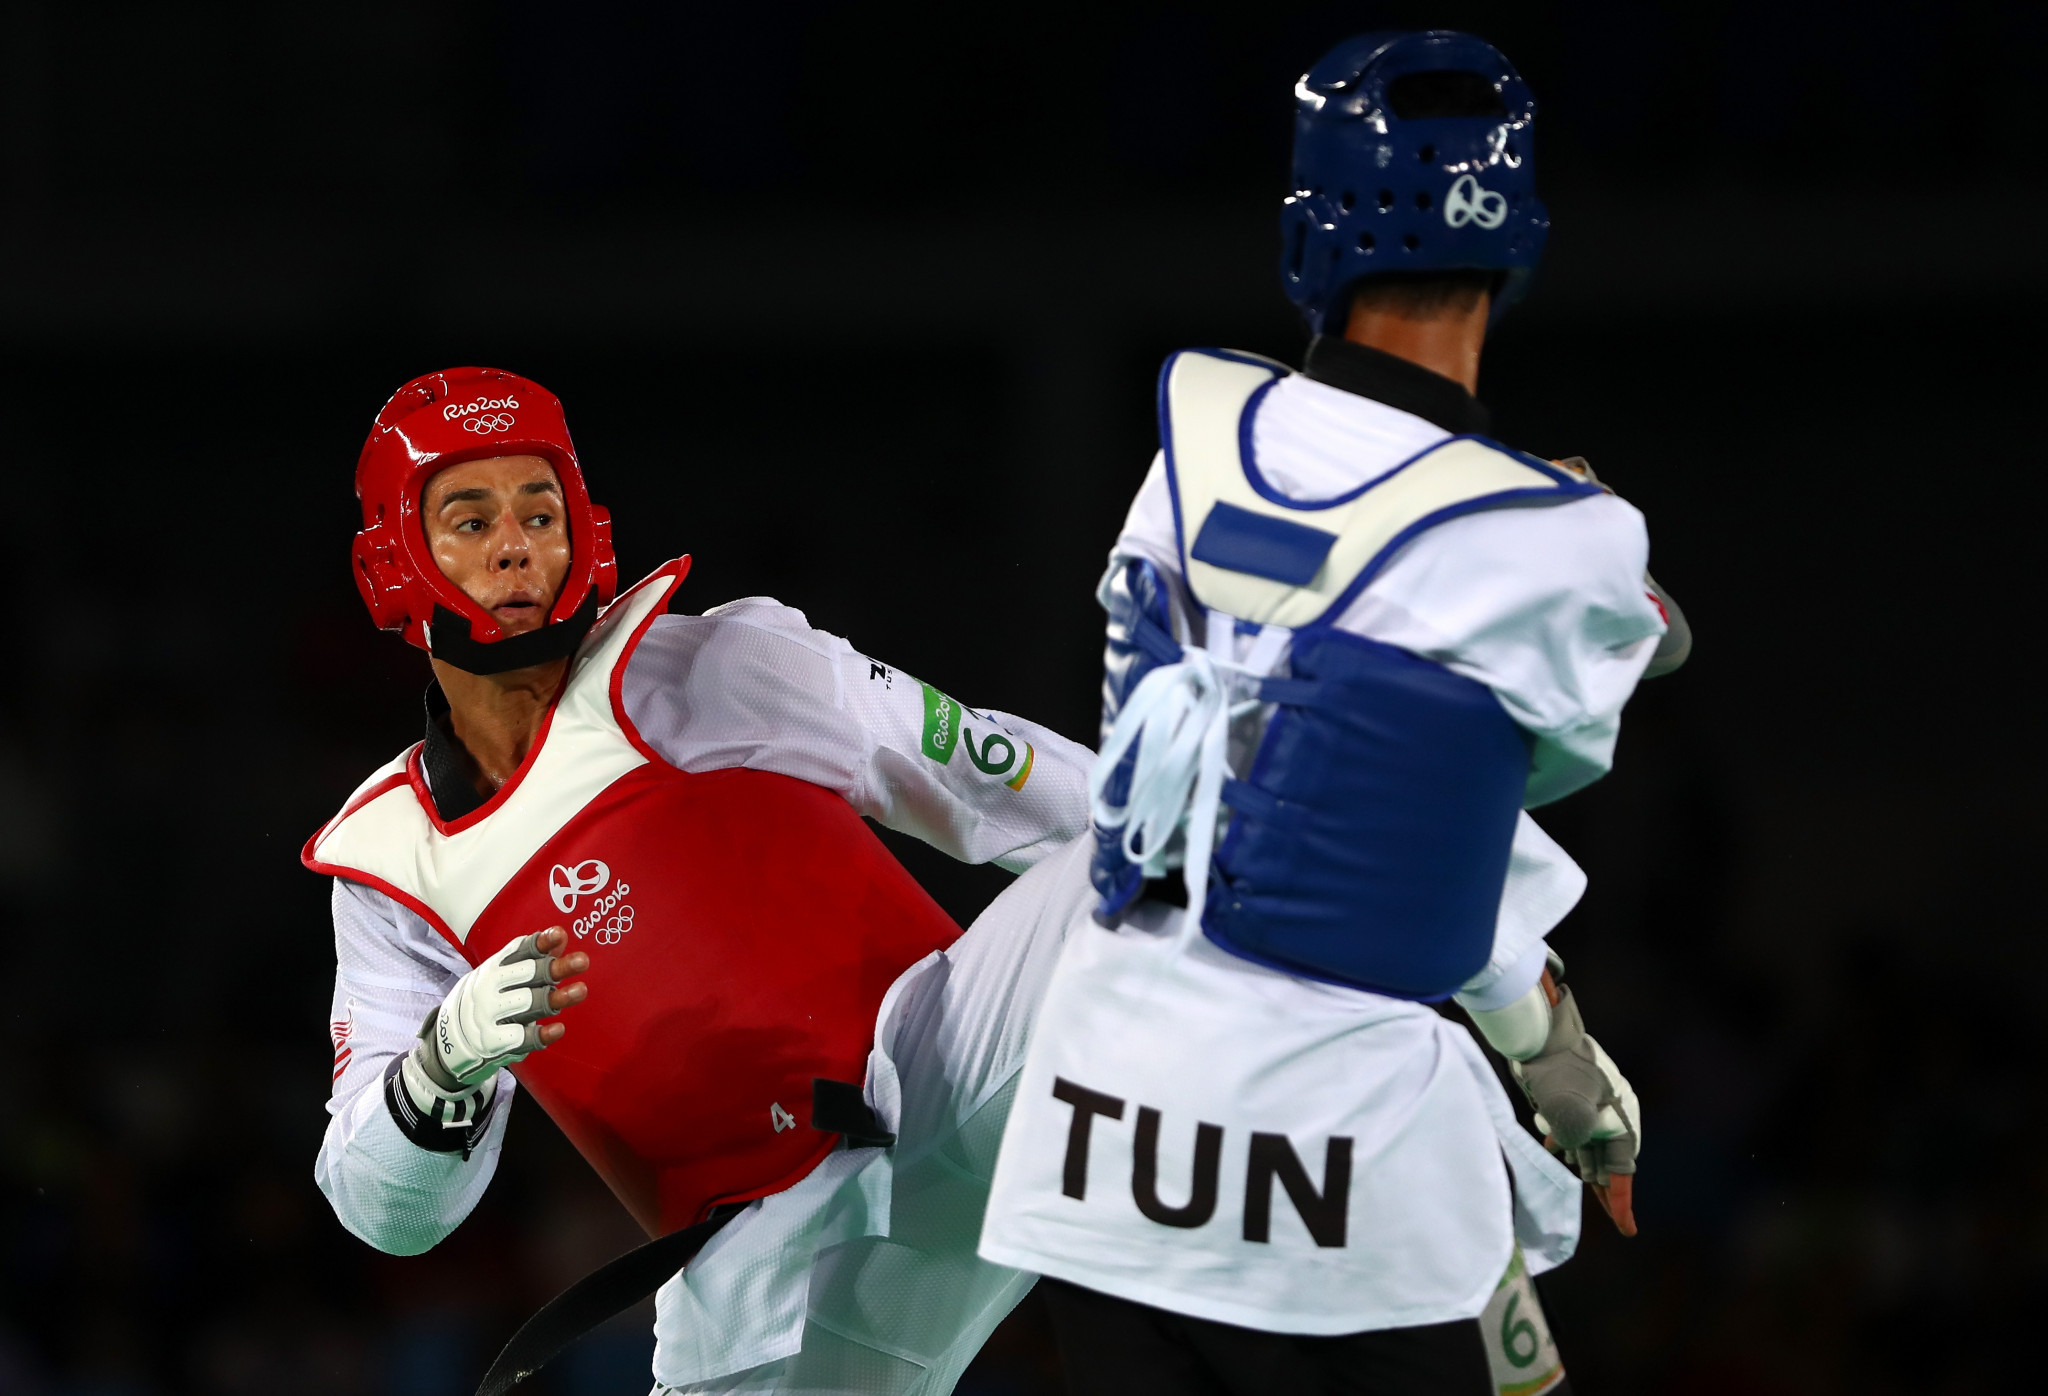 A permanent ban against two-time Olympic taekwondo champion Steven Lopez was overturned by an arbitrator last month ©Getty Images